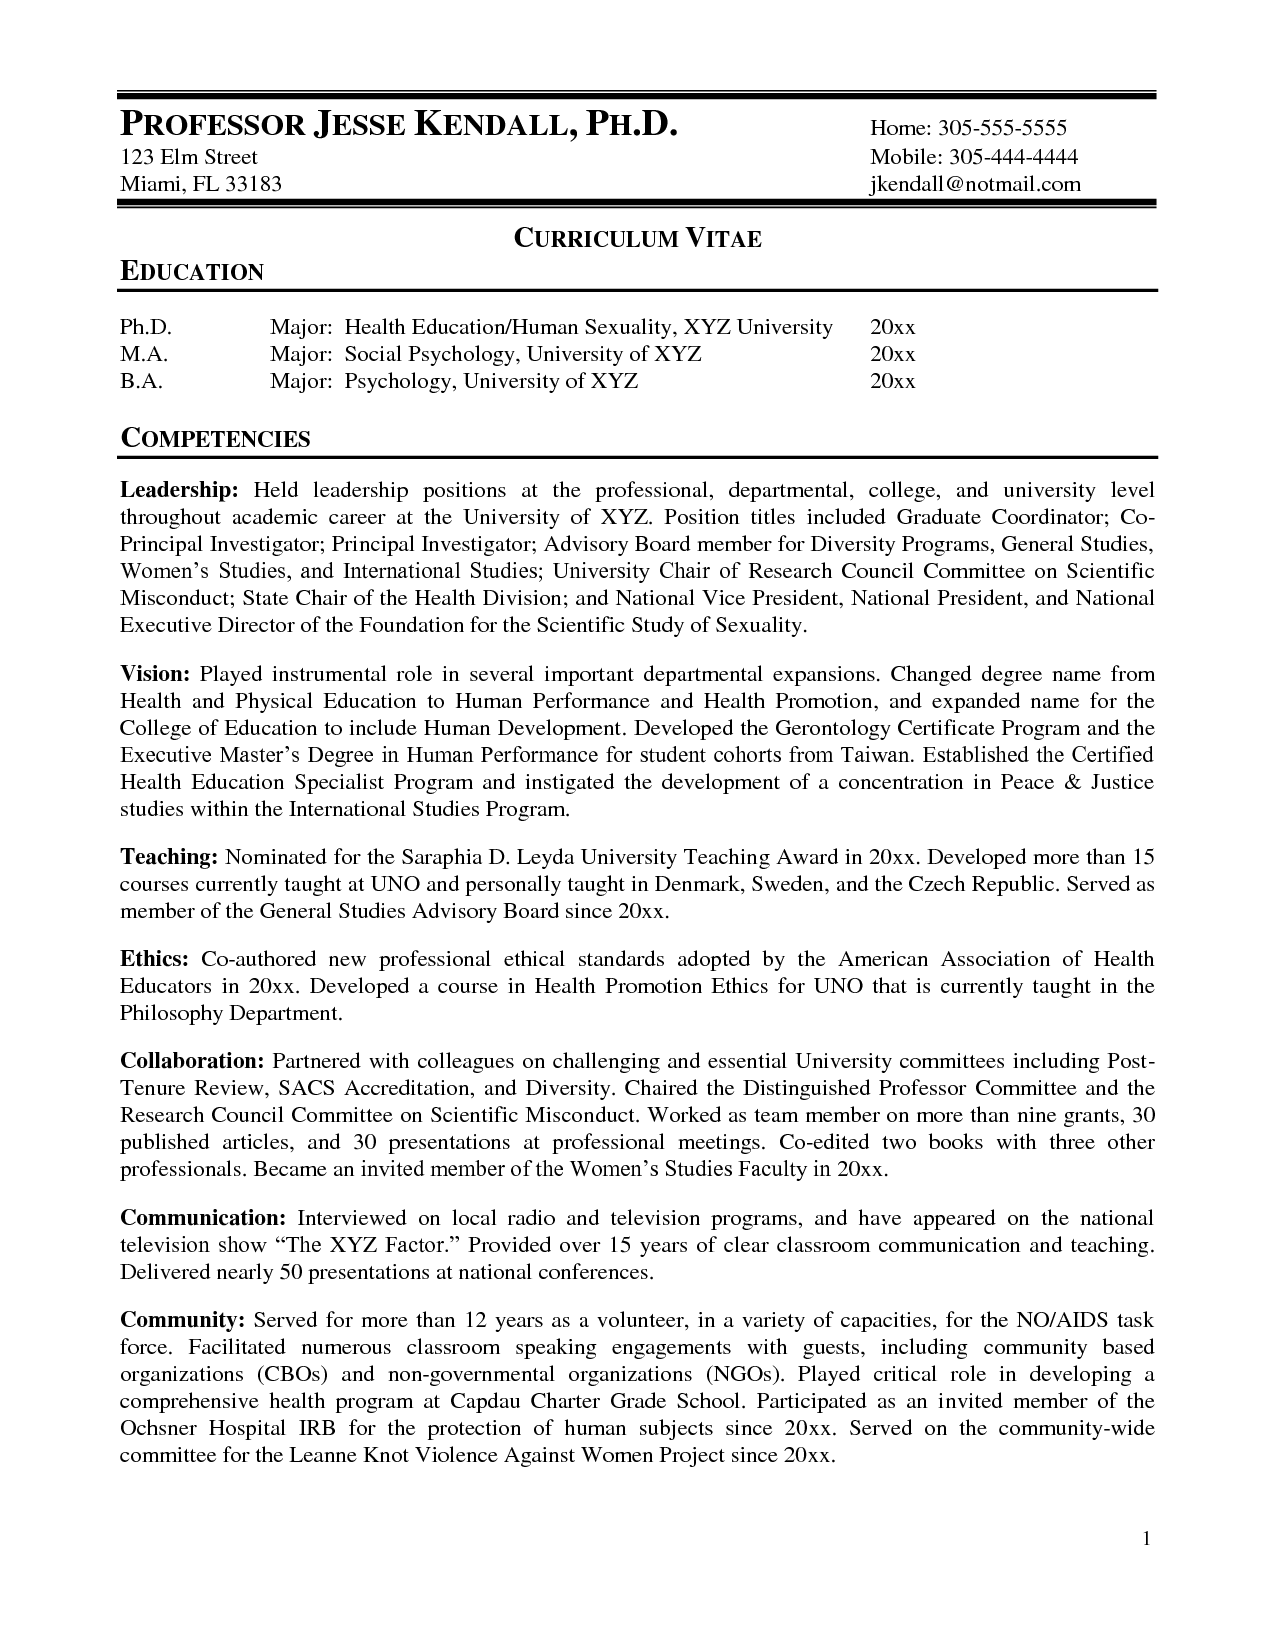 Resume Format For Zoology Lecturer Format Lecturer Resume